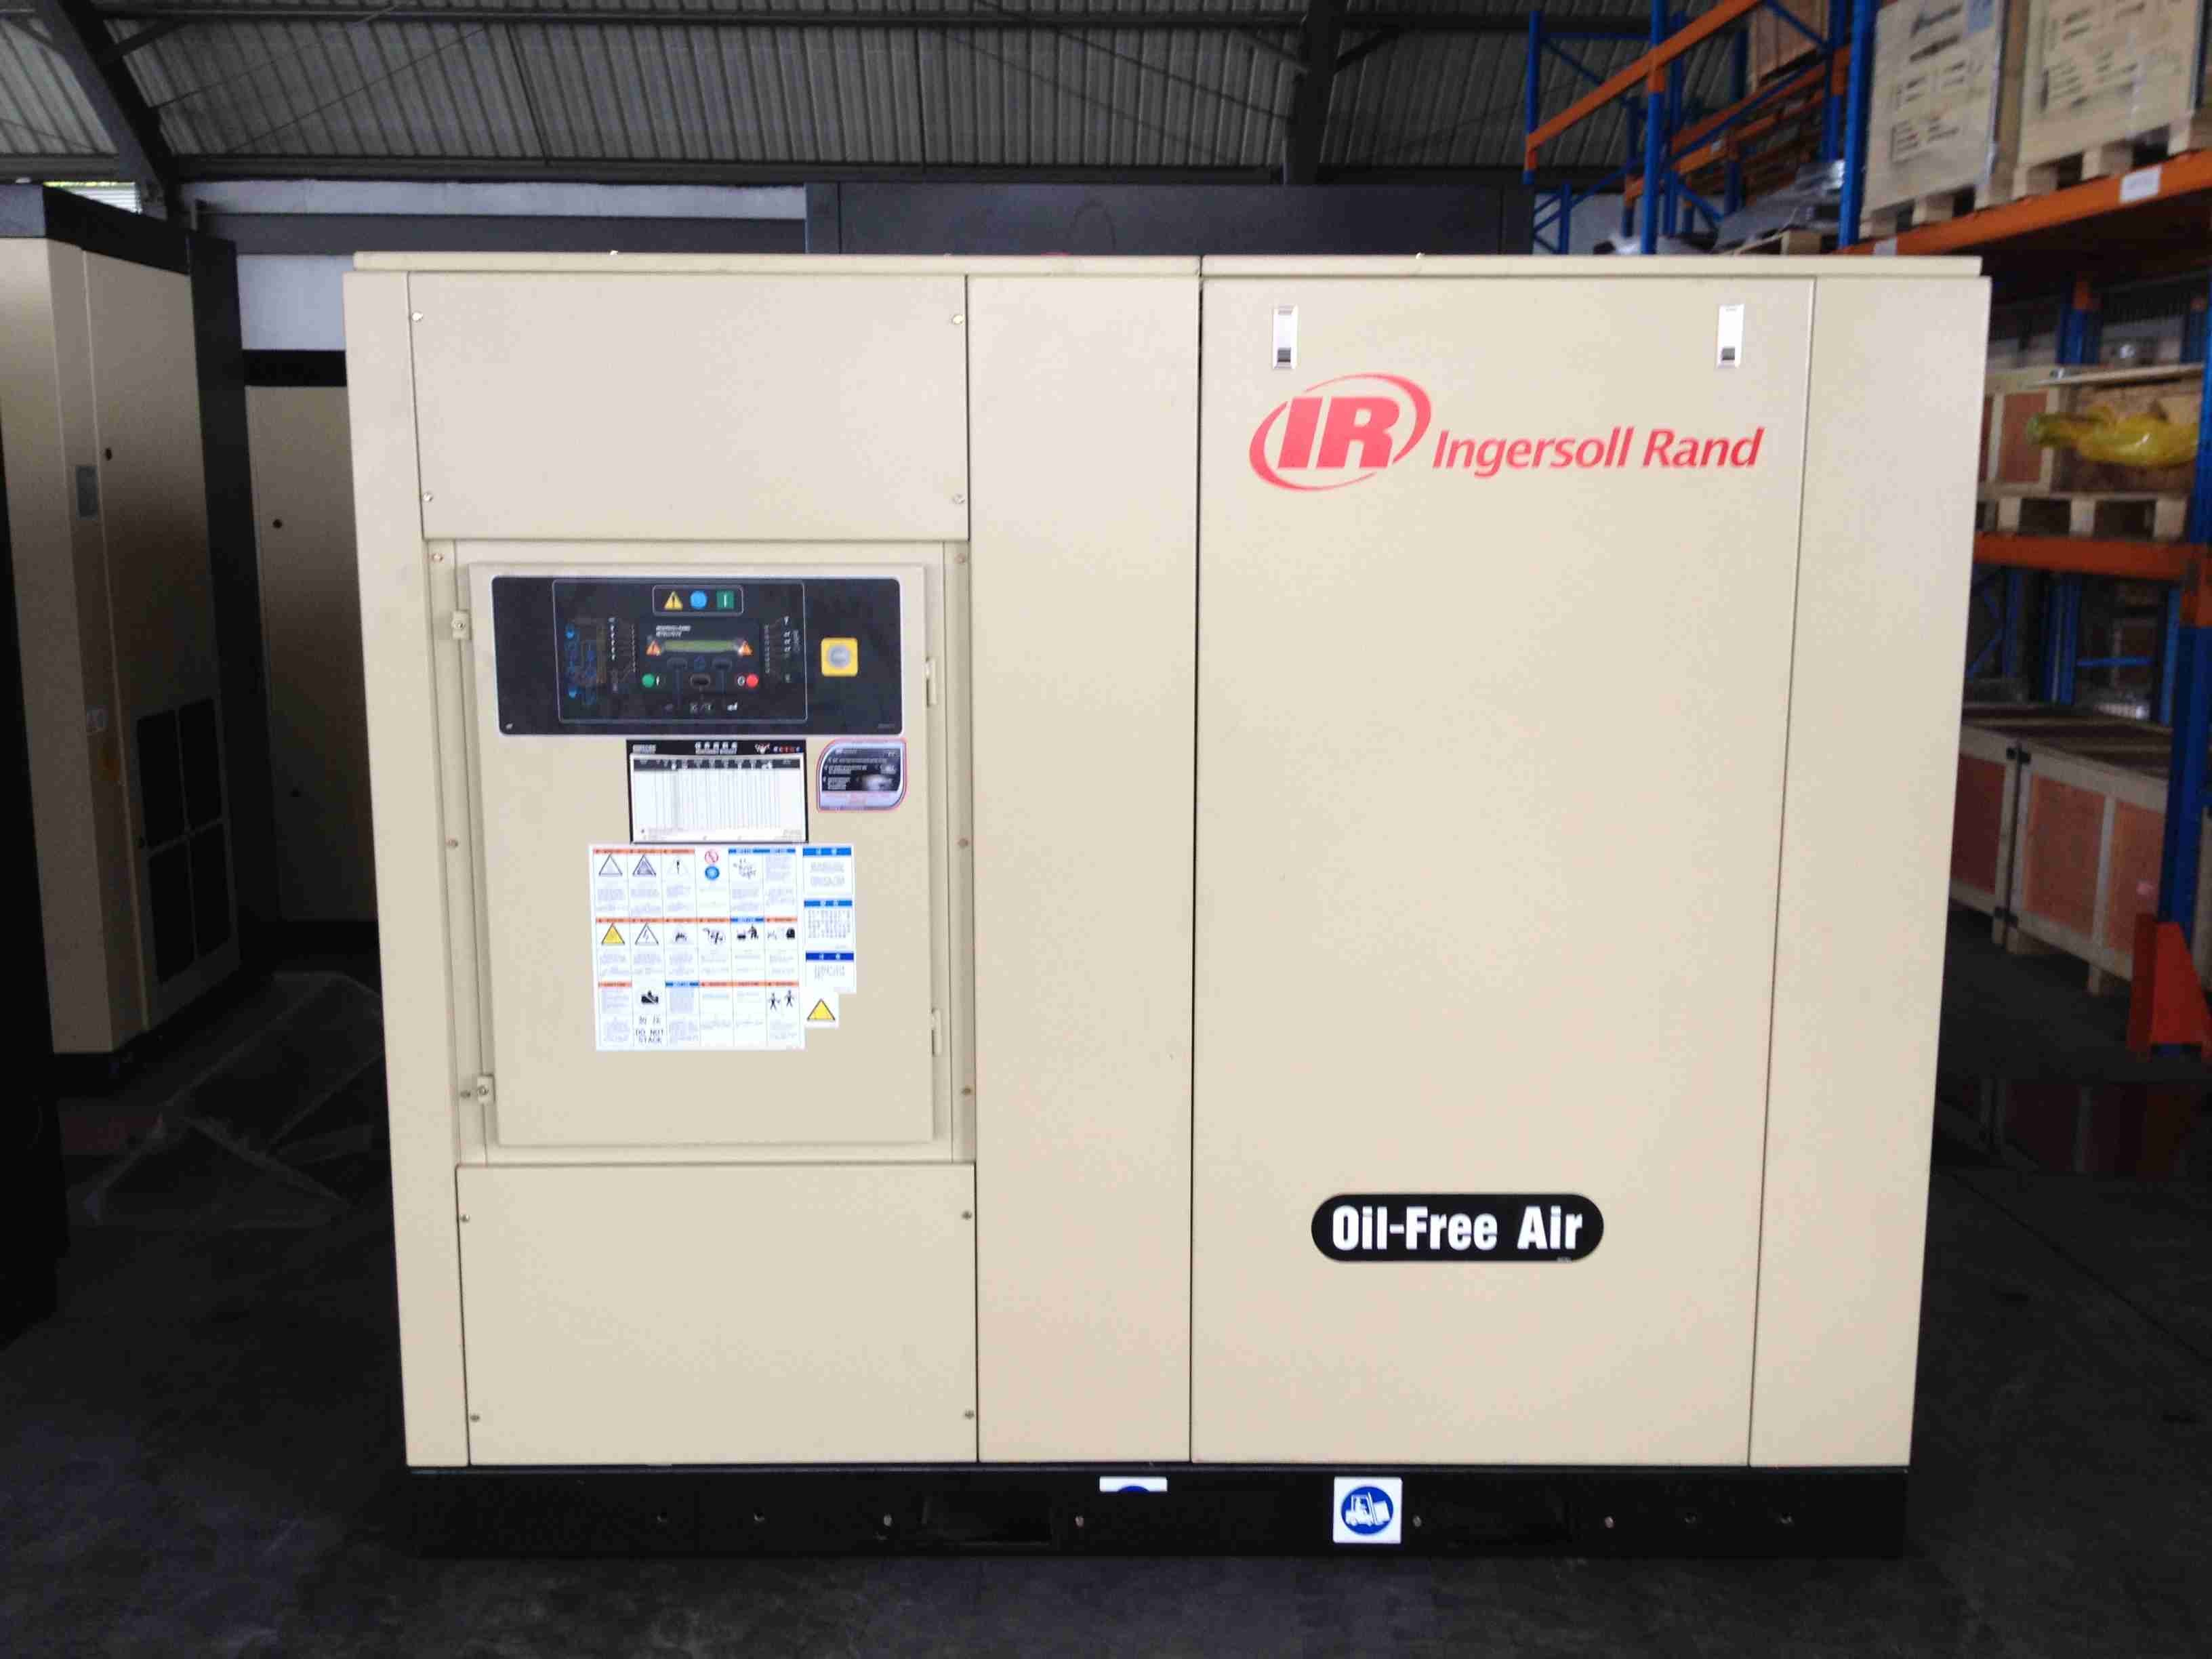 Ingersoll Rand Oil-Free Rotary Screw Air Compressor (SL90 SM90 SH90)